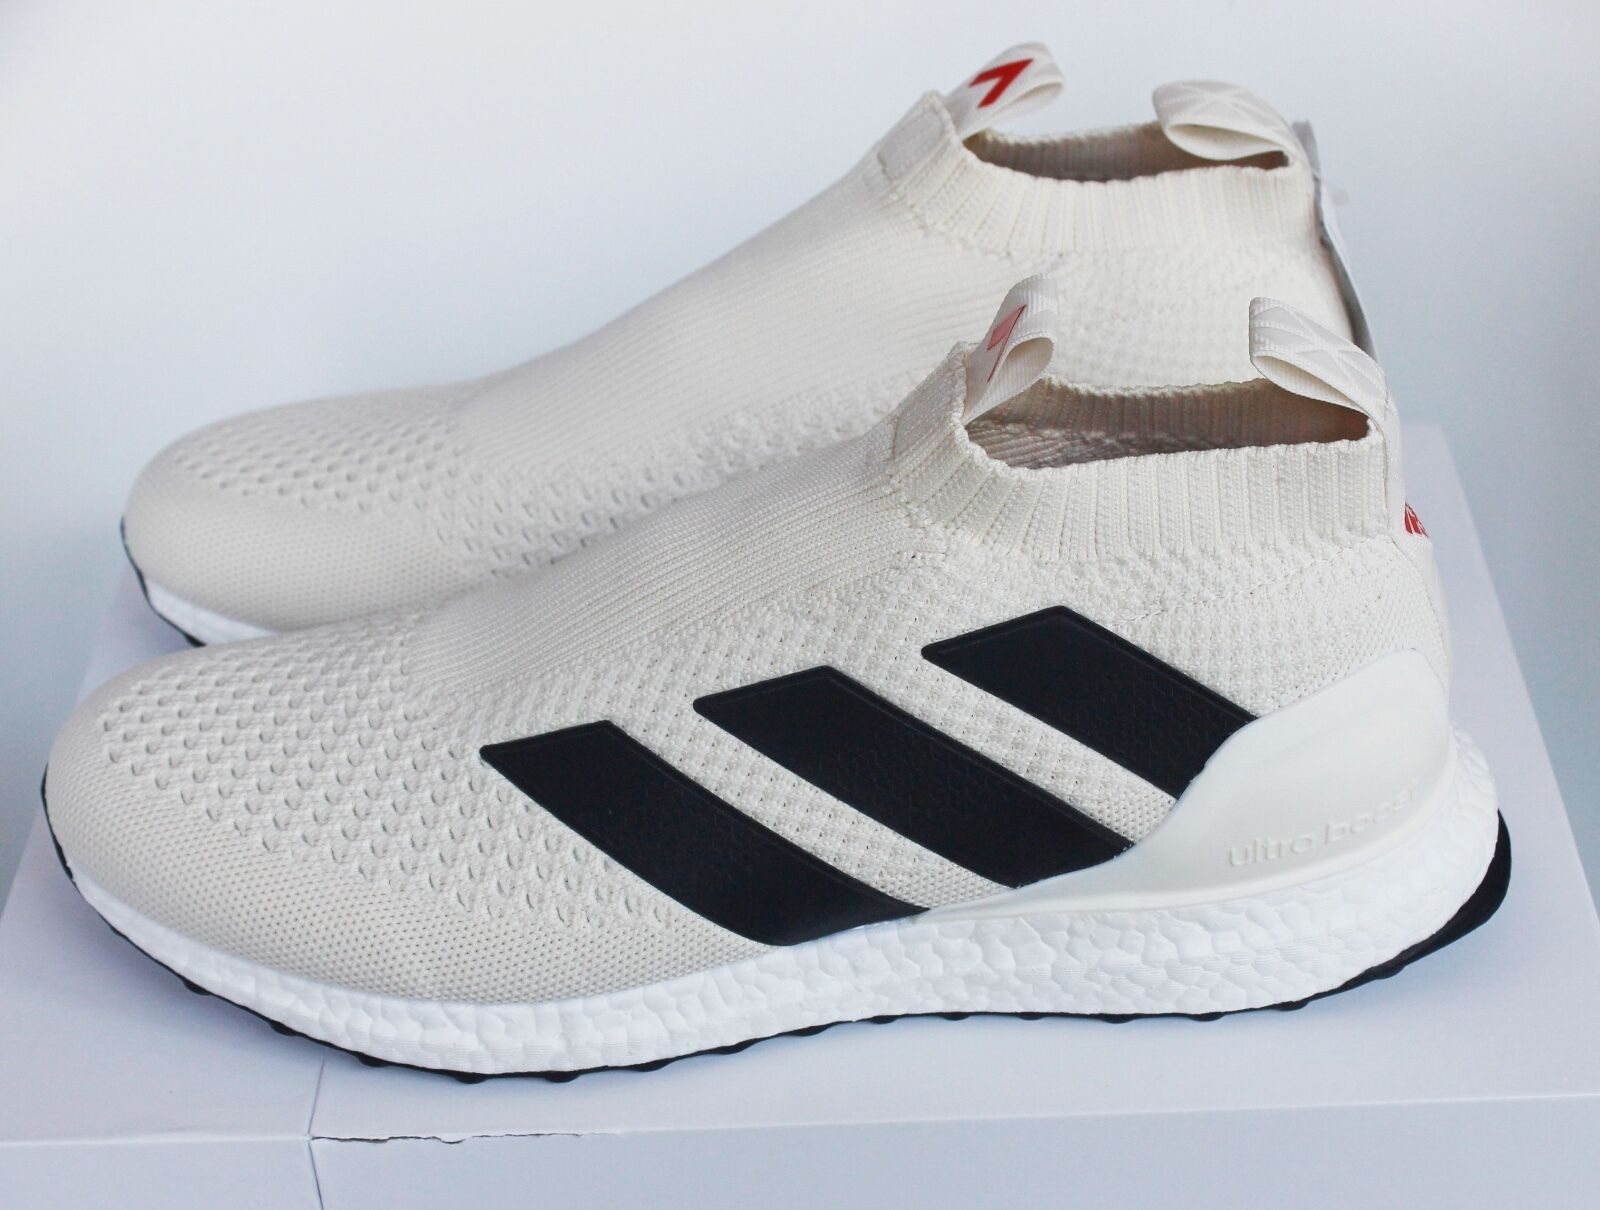 Adidas Ace 16+ Purecontrol Ultra Boost Champagne Cream BY9091 New